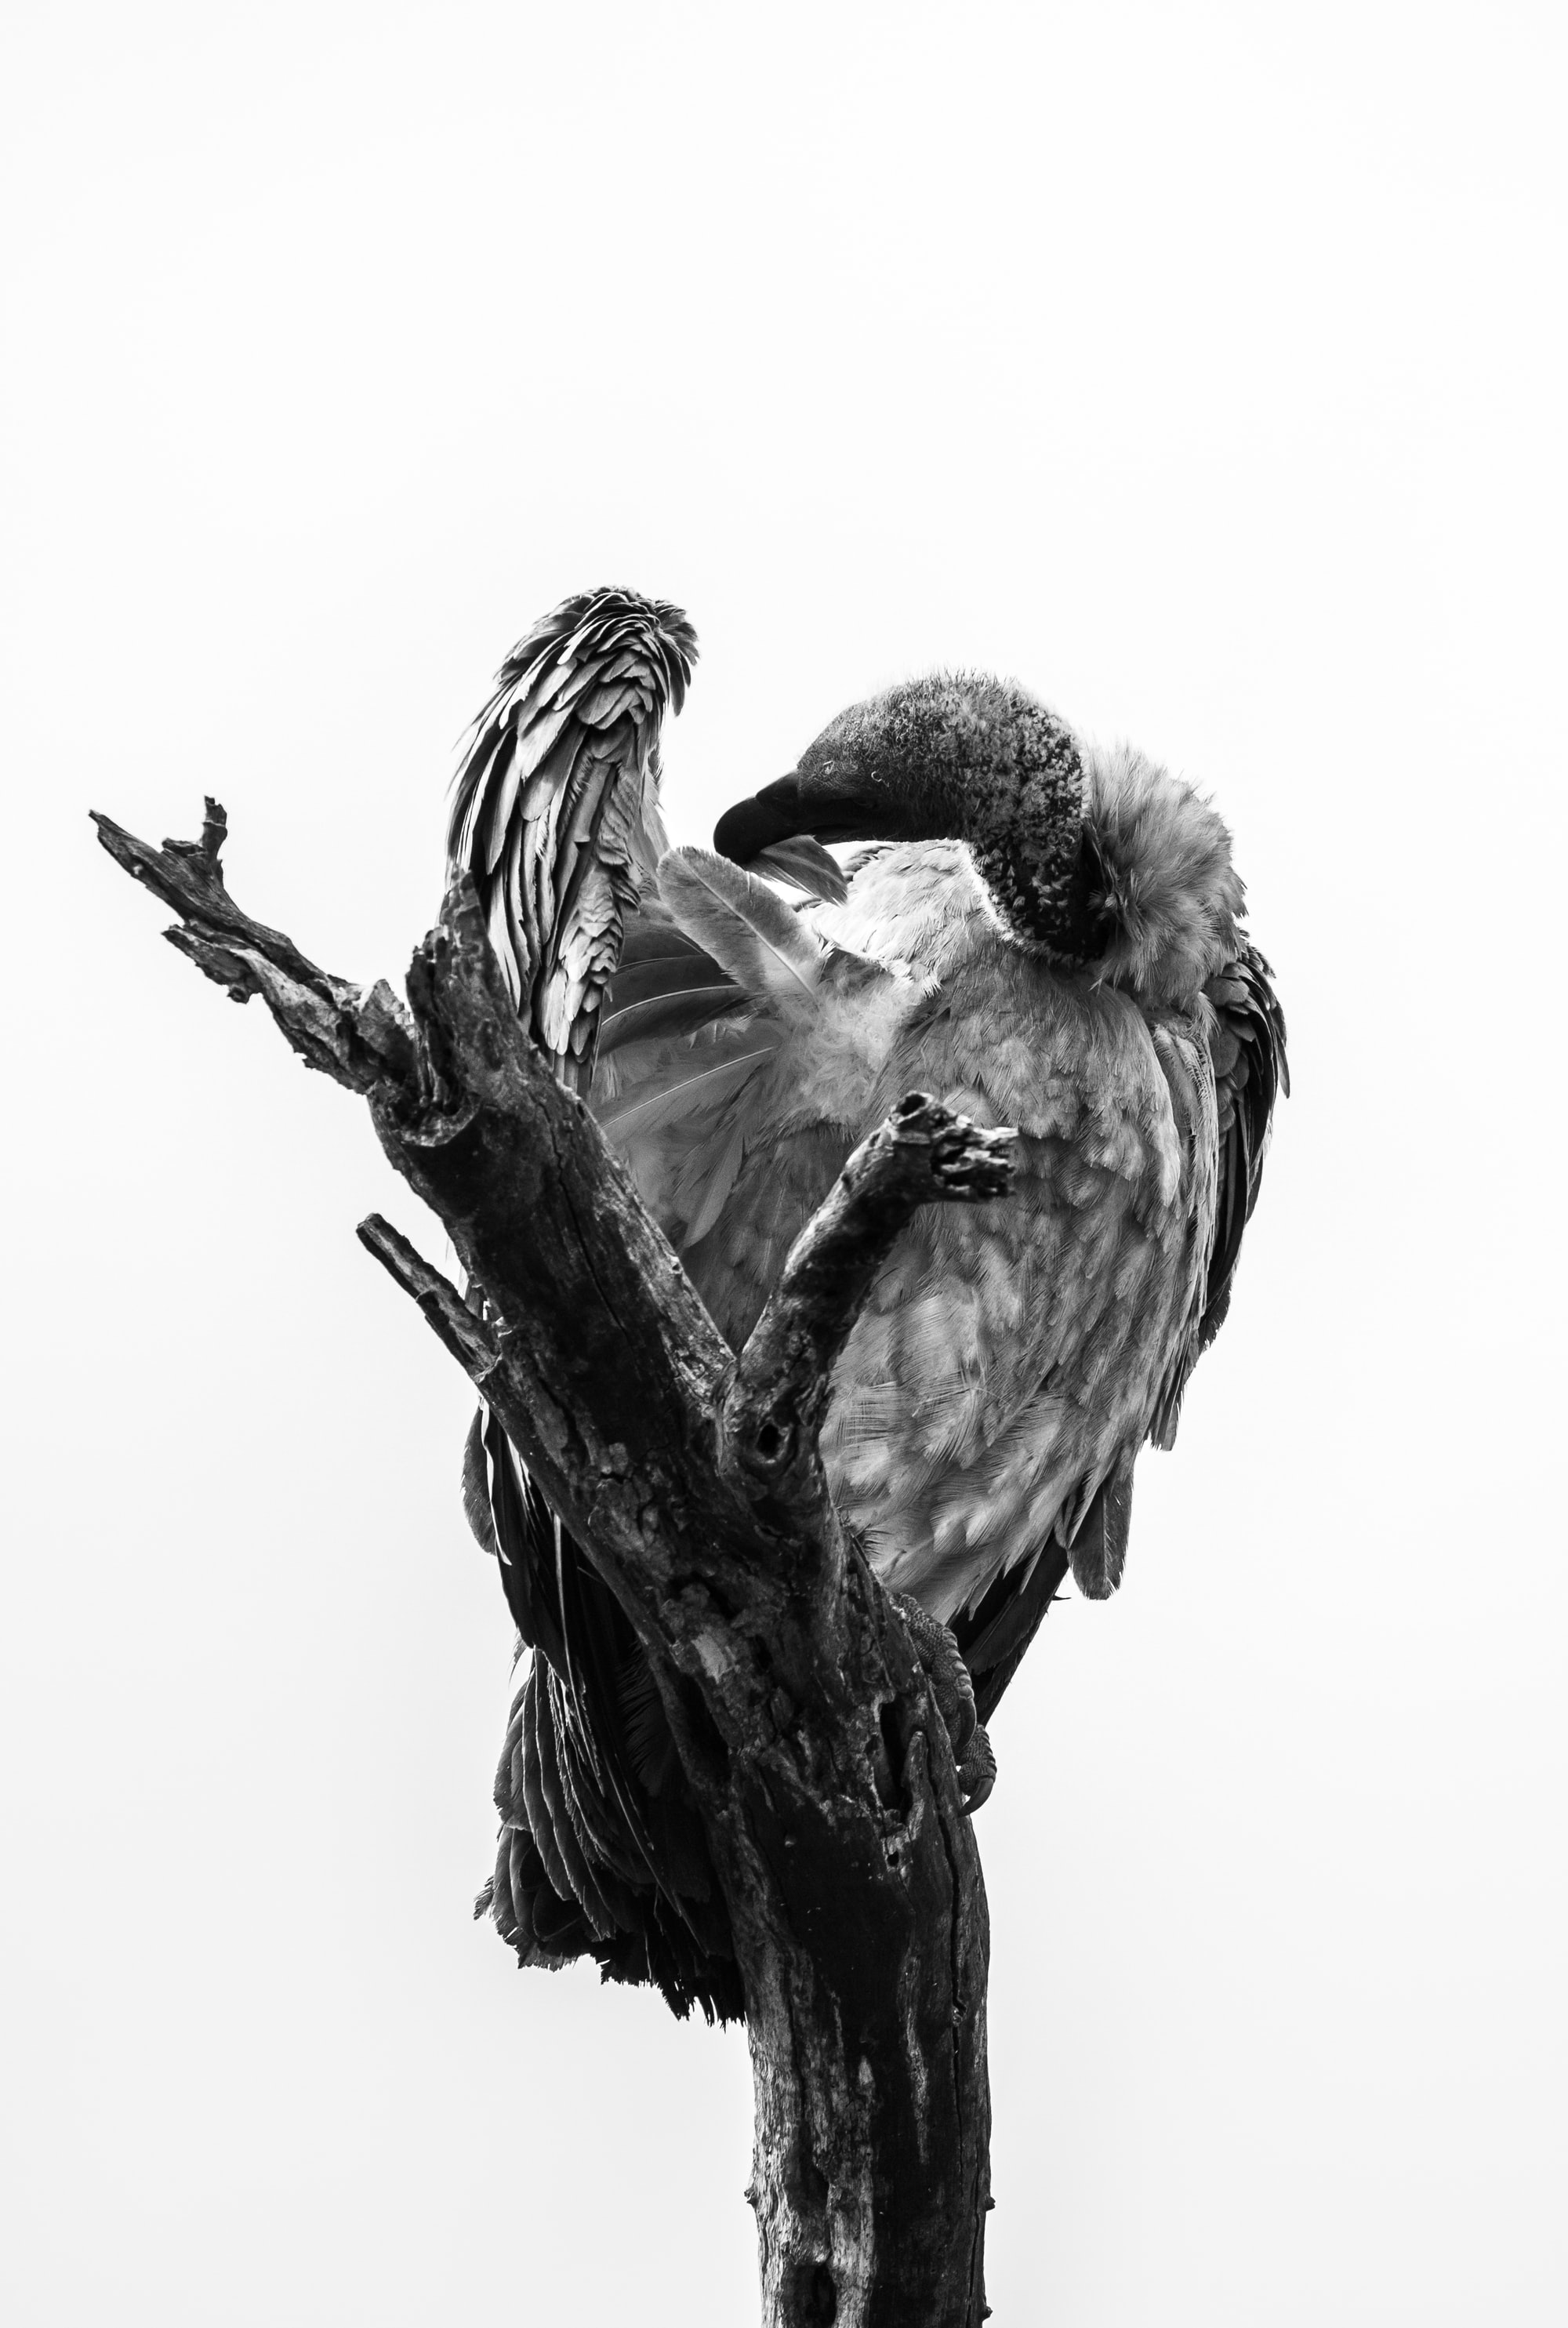 Vulture in high-key black and white style.